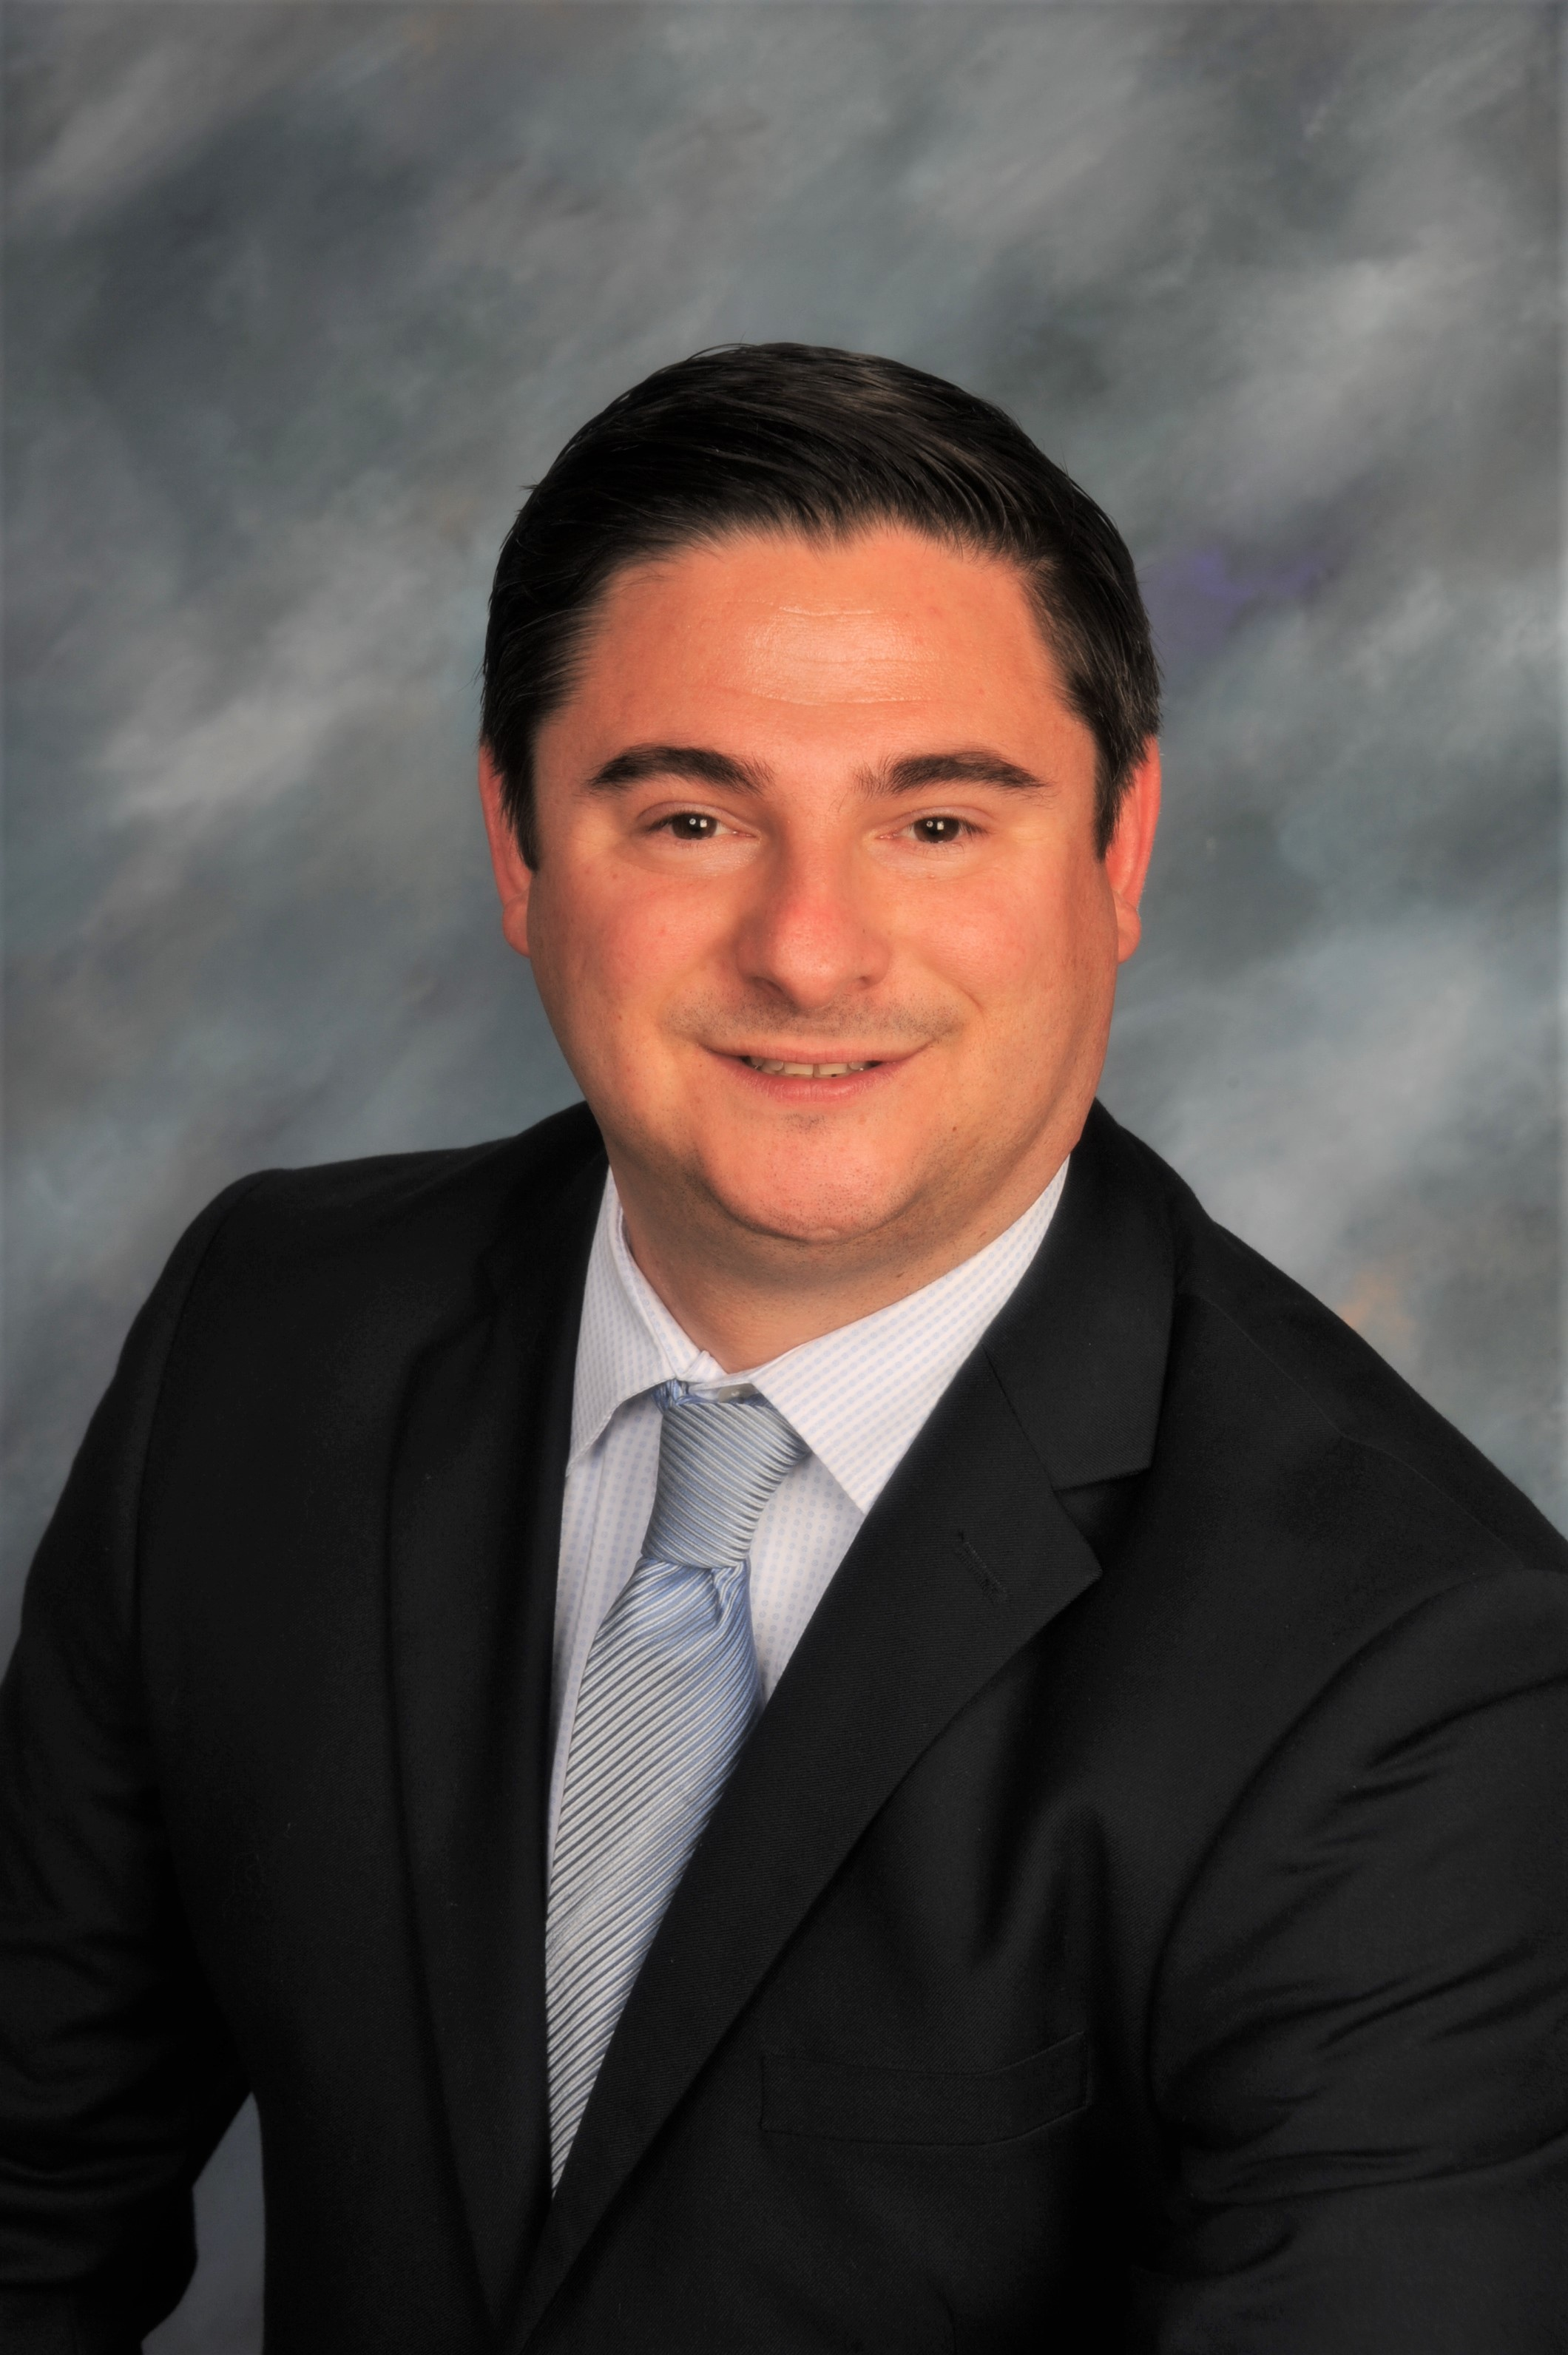 Chris Morse - Chris specializes in finding the best insurance solutions for his clients. With an extensive background in multiple facets of the insurance trade, he ensures his client's risk costs are managed effectively and affordably.